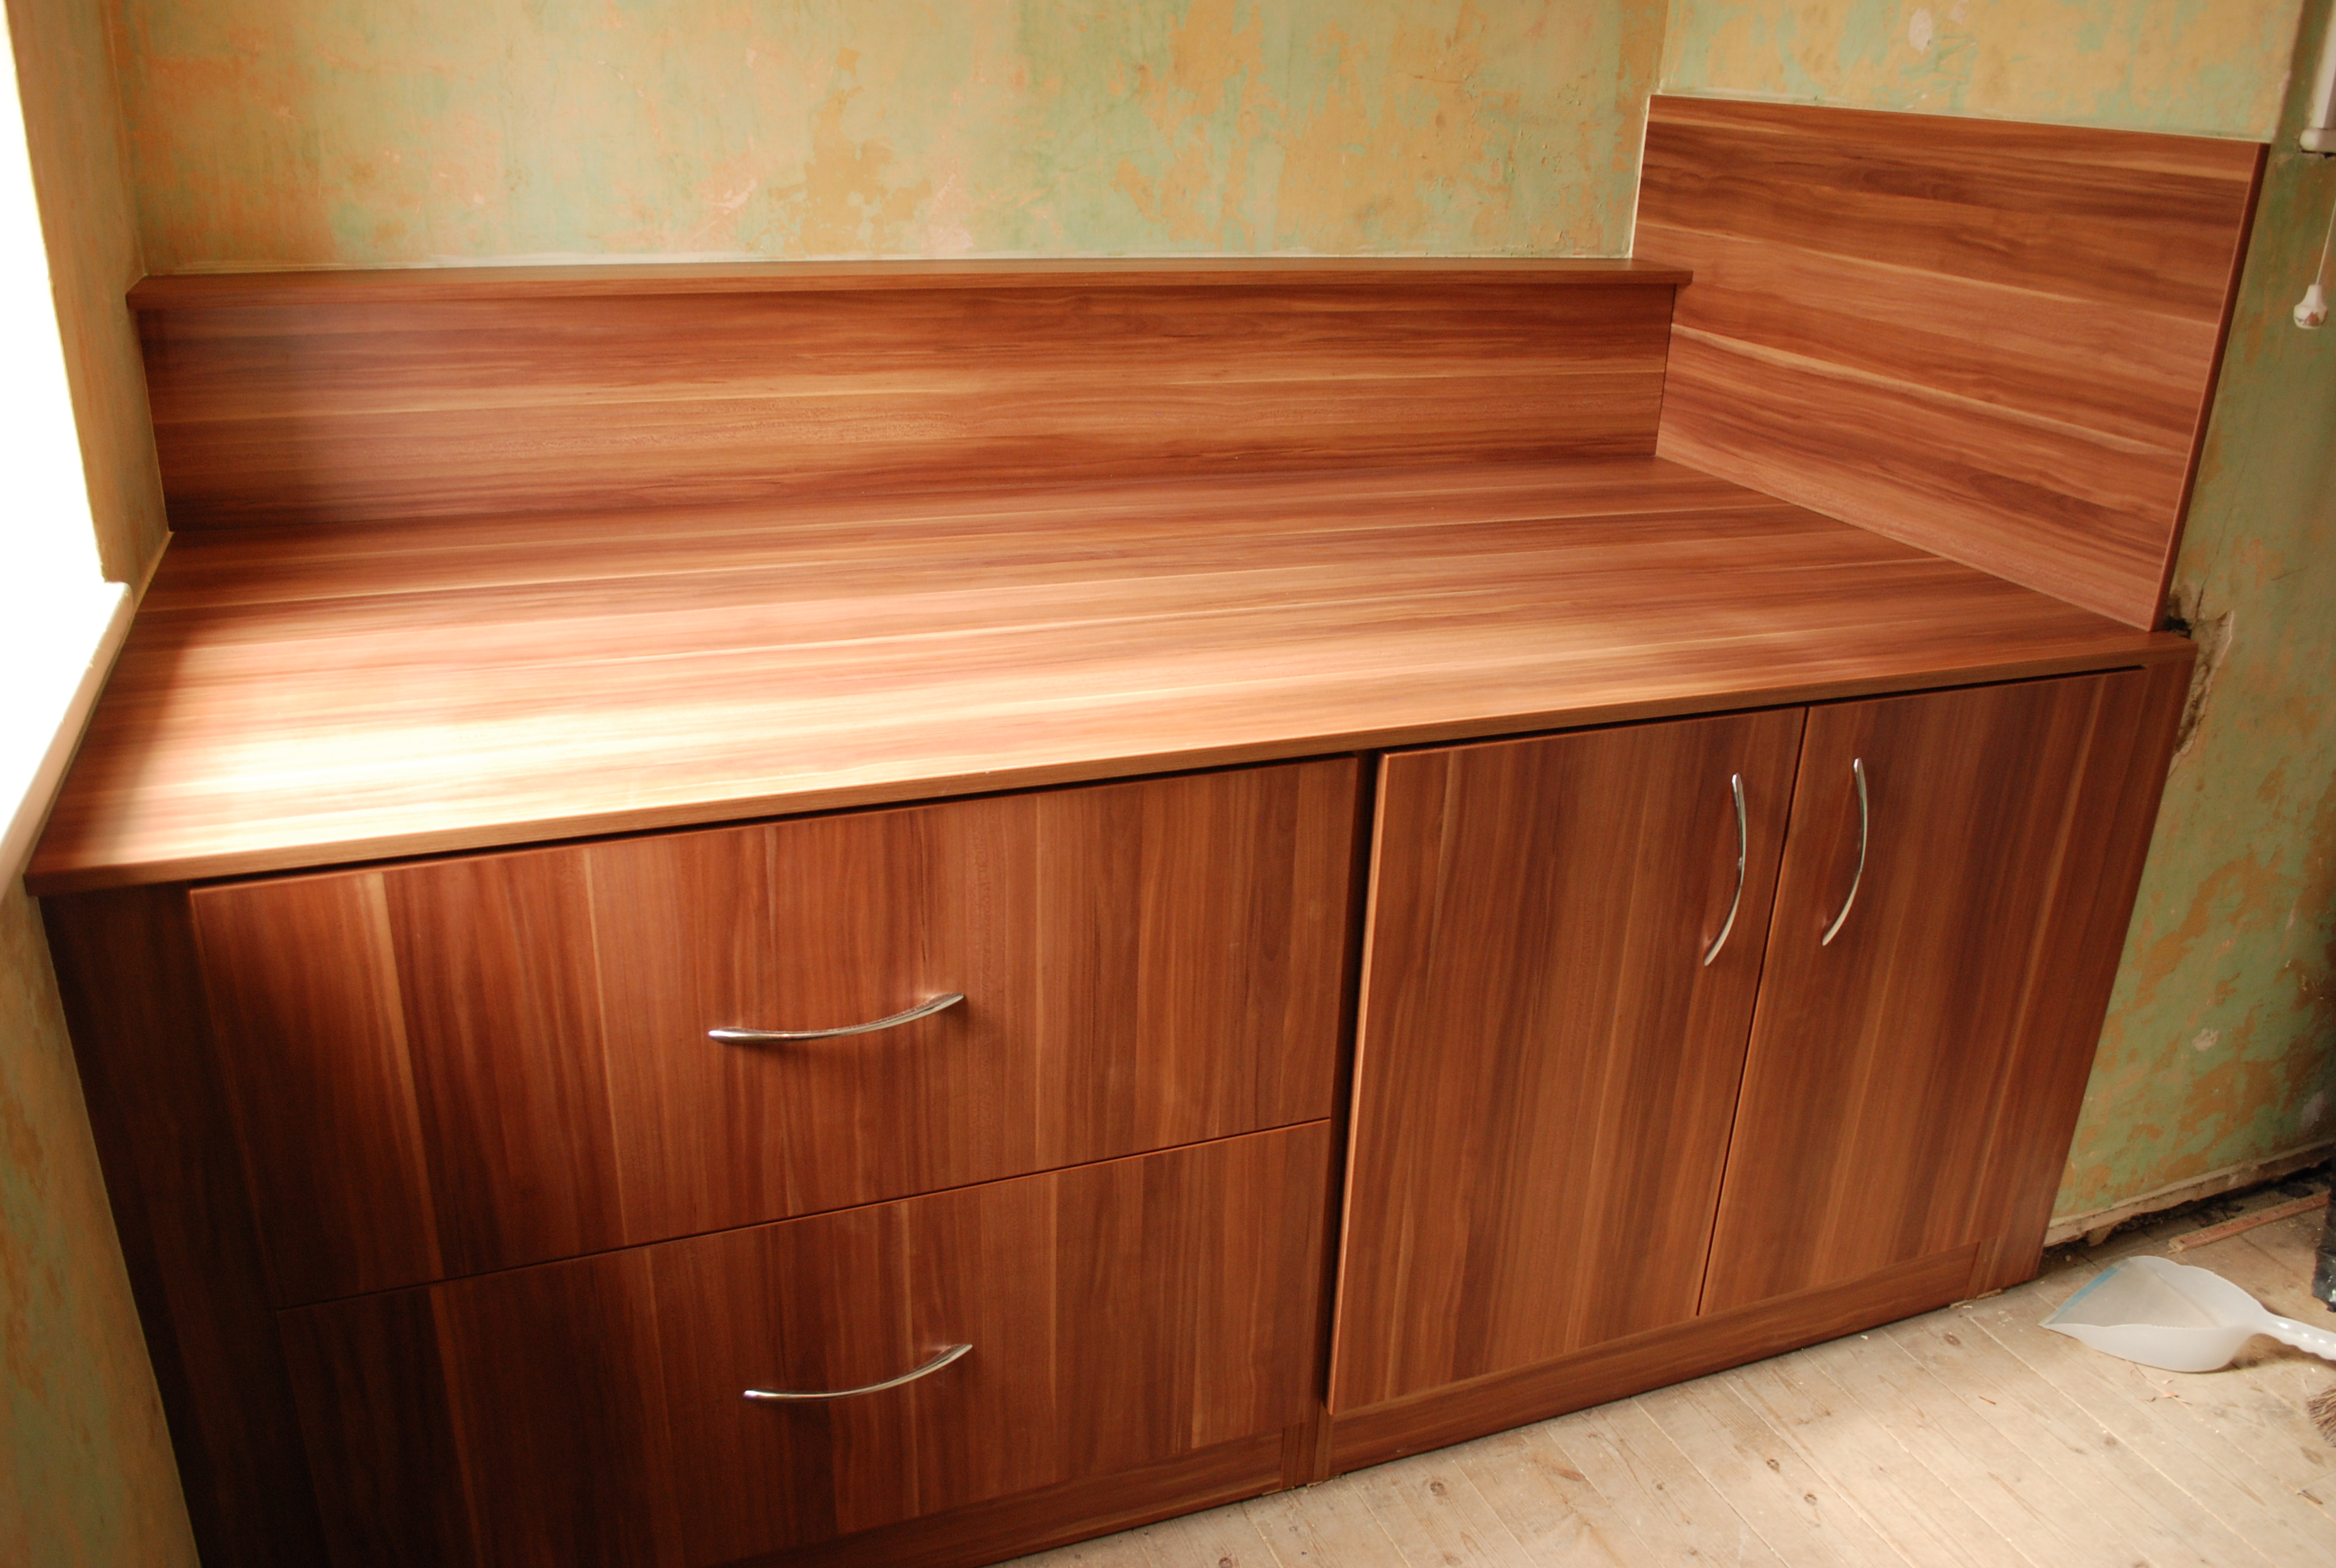 Image Result For Bed Built Over Stair Box: Cabin Bed With Drawers